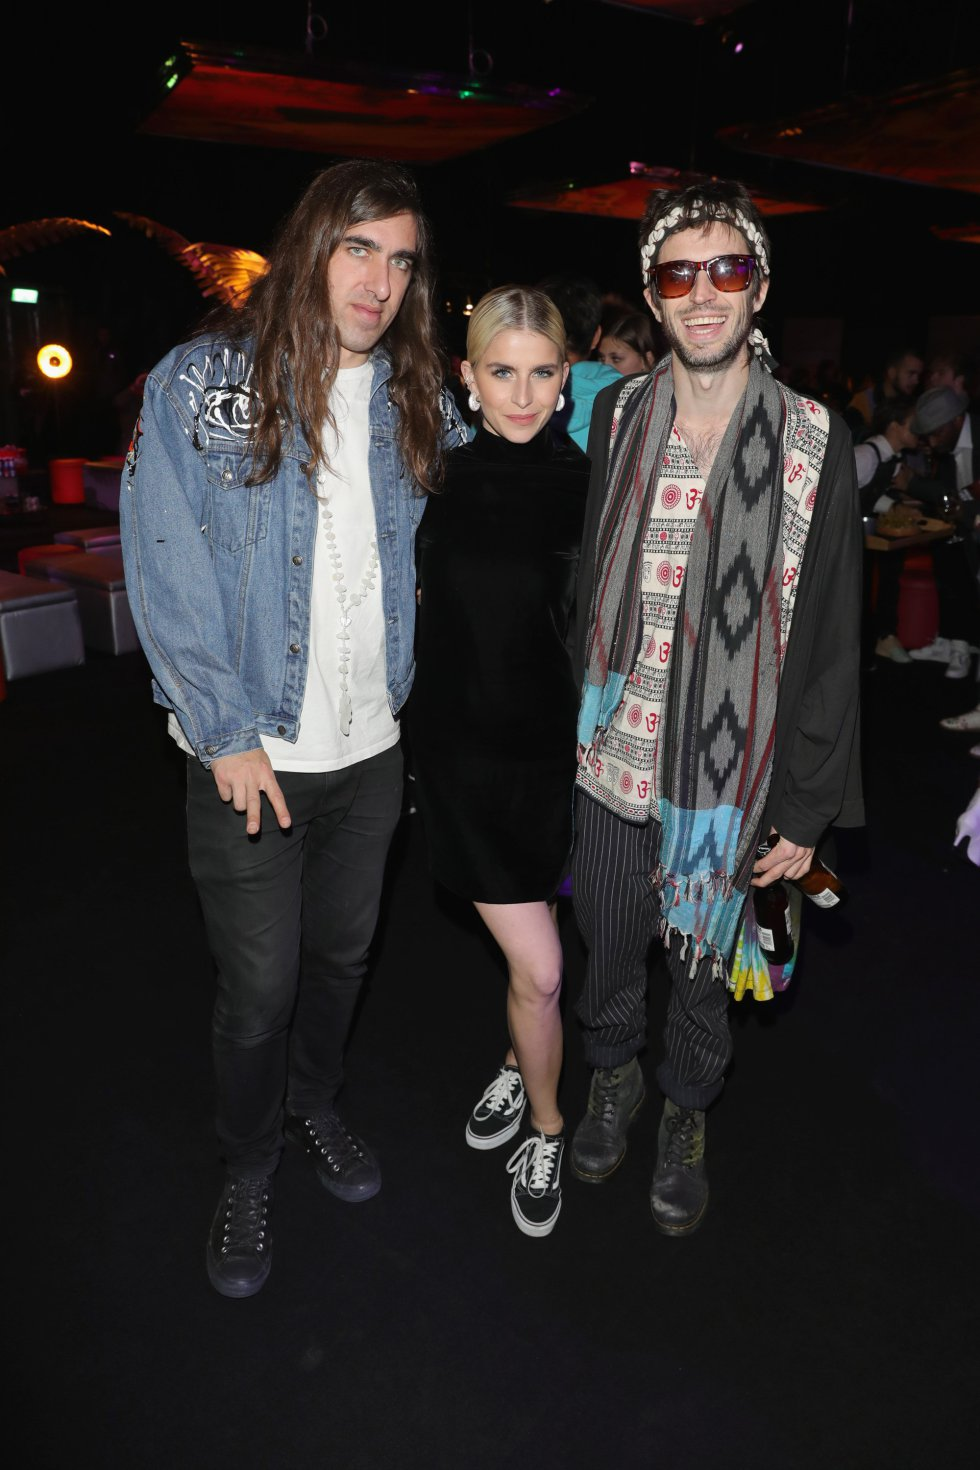 BILBAO, SPAIN - NOVEMBER 04: Gilbert Vierich, Caroline Daur and Sebastian Pringle attend the MTV EMAs 2018 after show party at Bilbao Exhibition Centre on November 4, 2018 in Bilbao, Spain.  (Photo by Andreas Rentz/Getty Images for MTV)